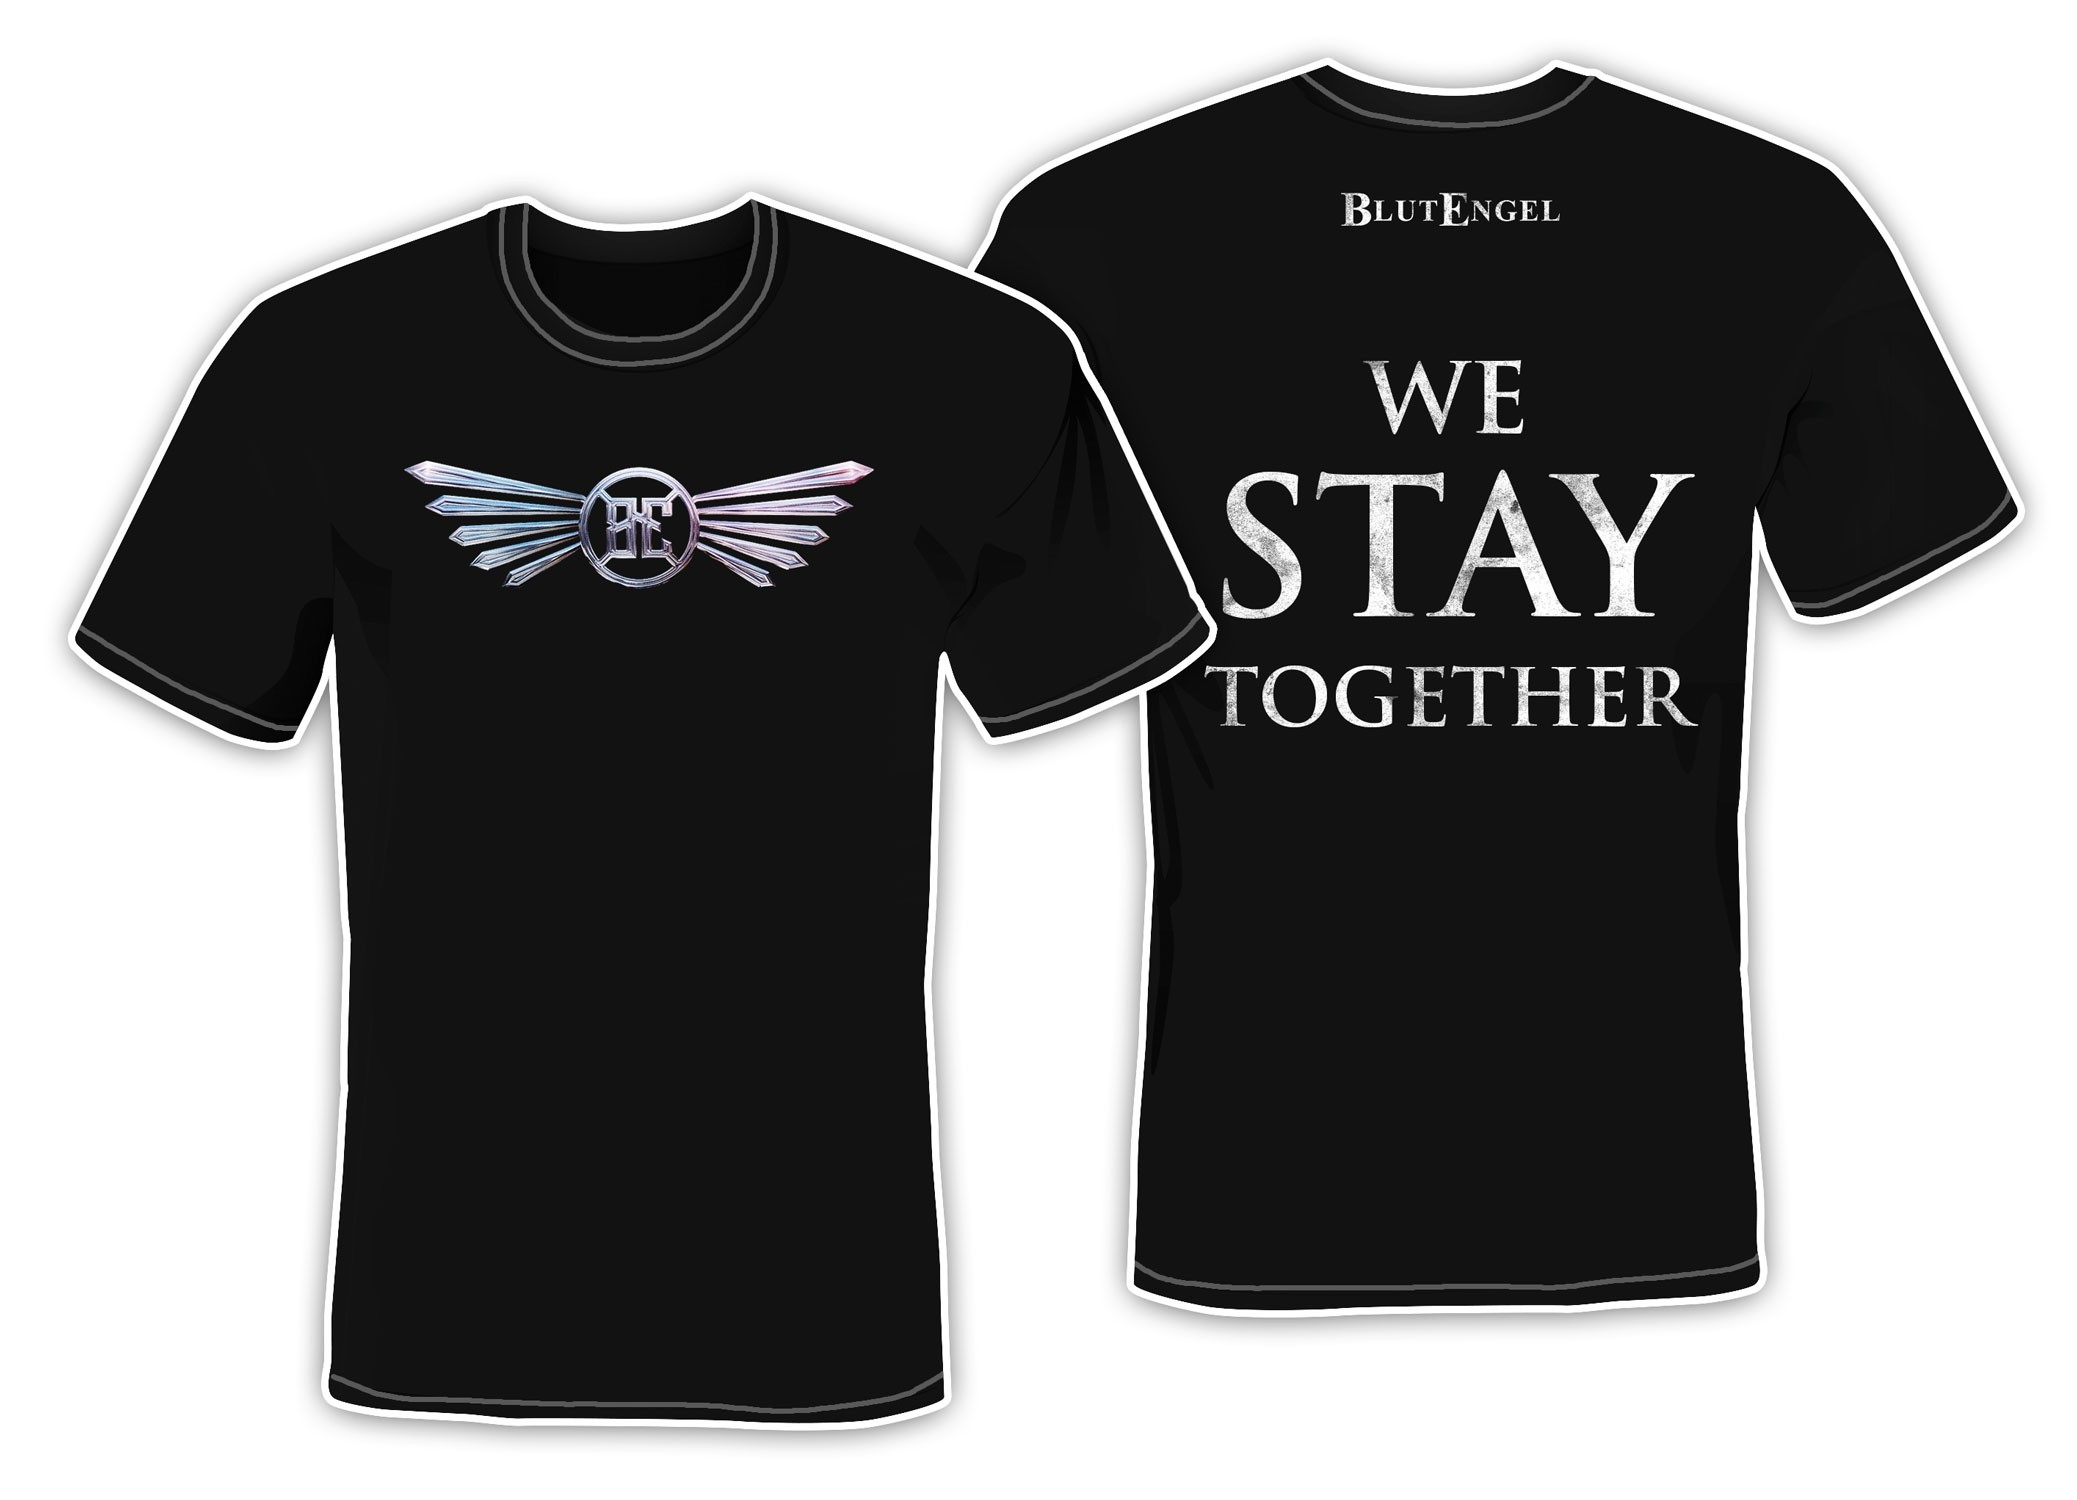 Blutengel - We Stay Together - T-Shirt